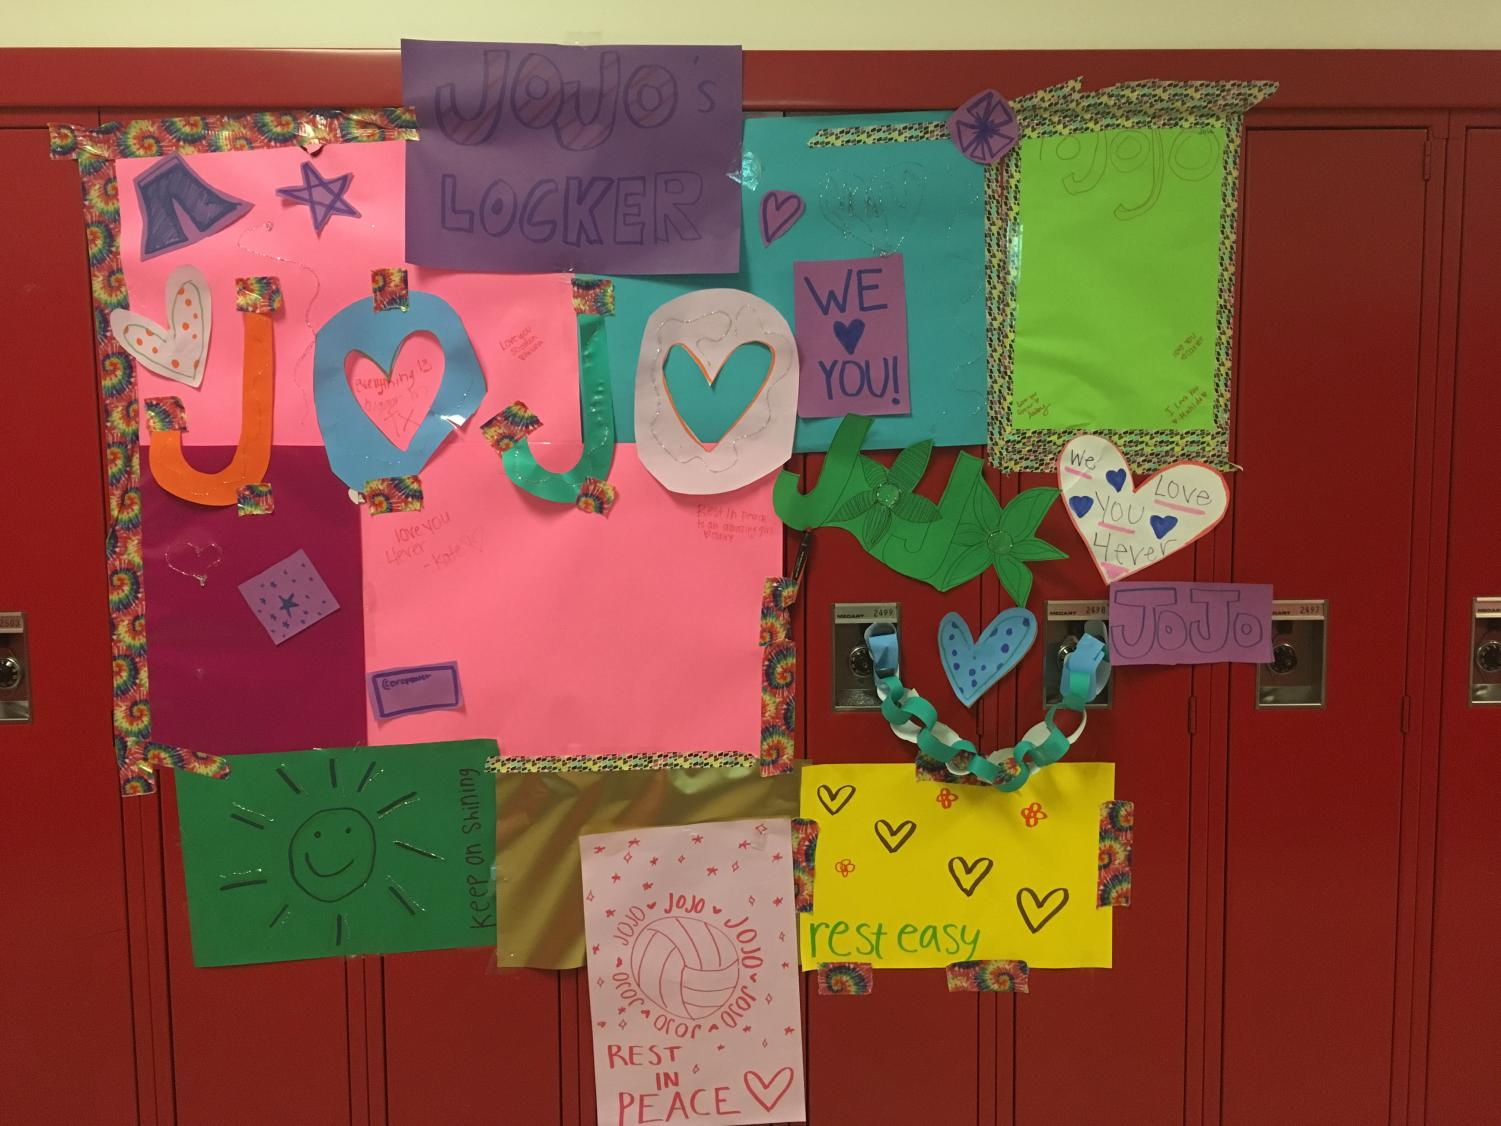 Students decorated a locker in JoJo's memory.